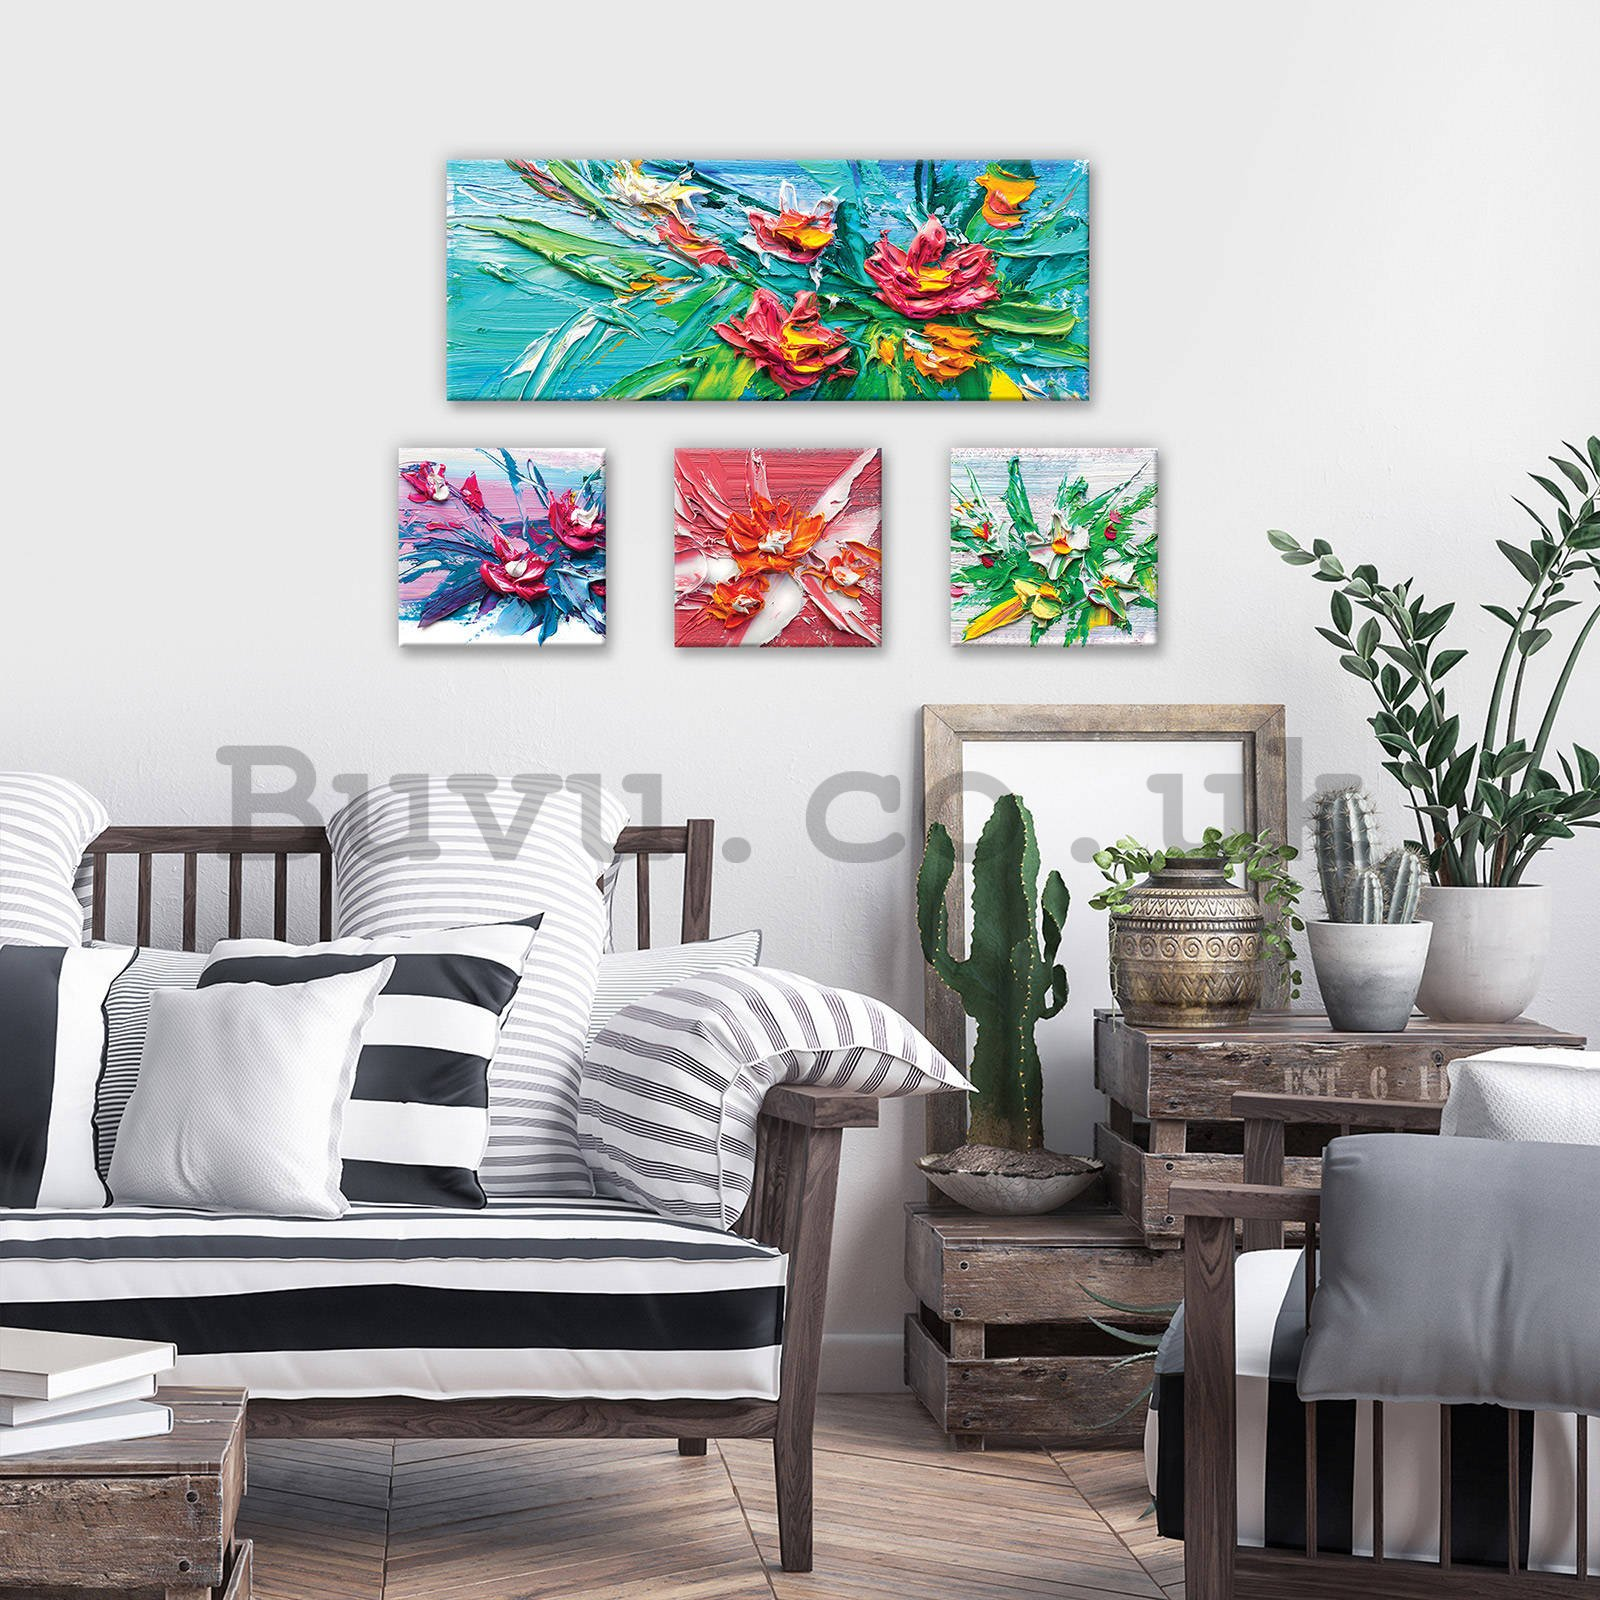 Painting on canvas: Painted flowers - set 1pc 80x30 cm and 3pc 25,8x24,8 cm